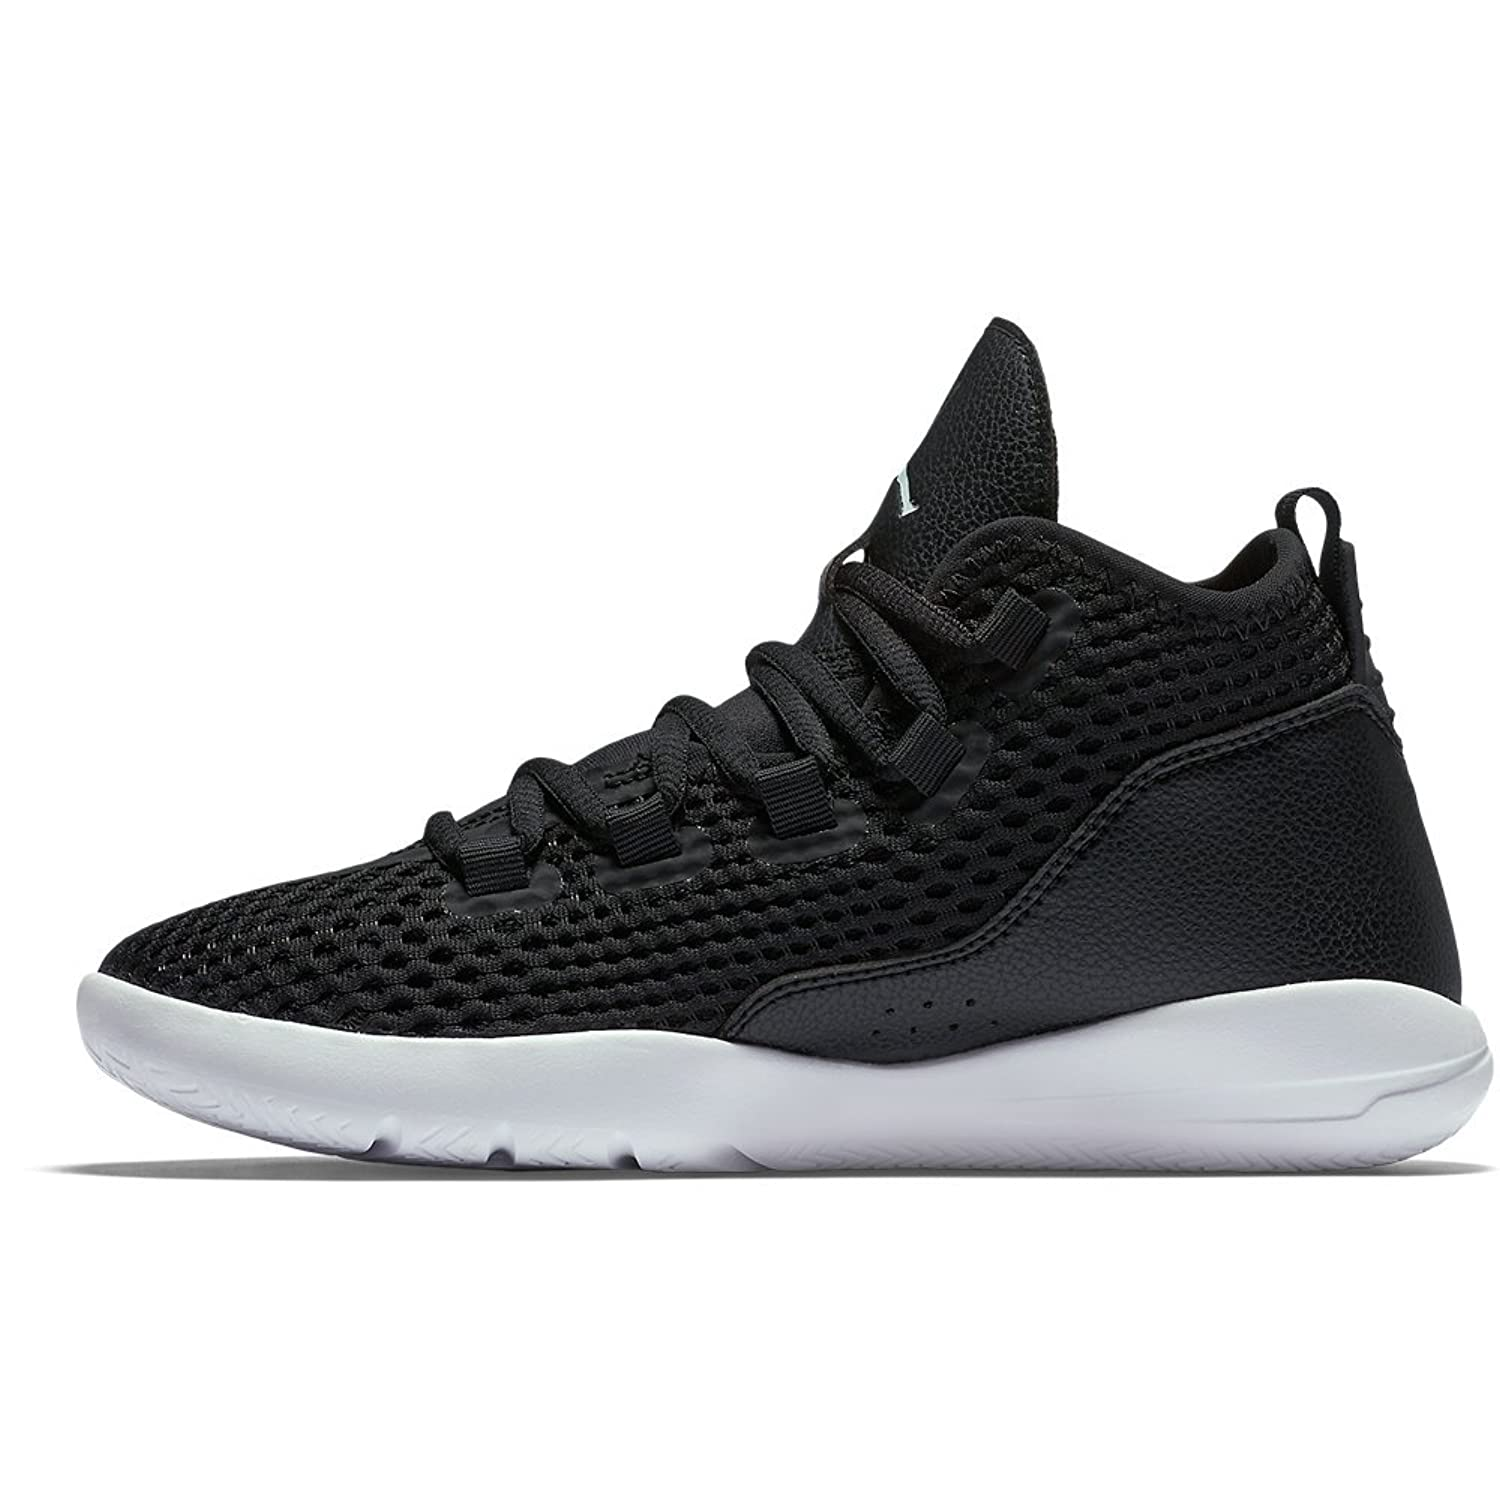 Nike Black White Zapatillas Black White de Baloncesto Nike Para